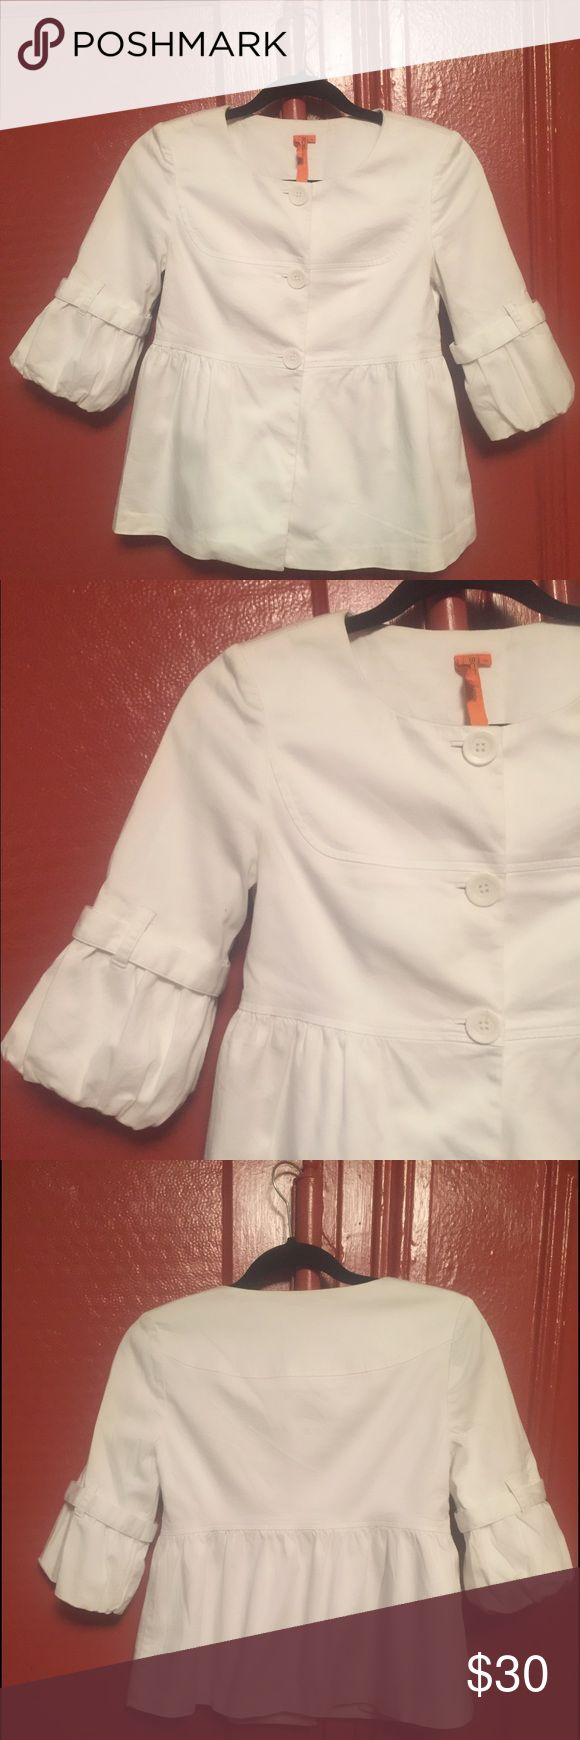 BCBGeneration jacket sz XS White 3/4 sleeve jacket. Gorgeous detail, was my favorite but is now too snug one me. There is a little discoloration at the back of the neckline. BCBGeneration Jackets & Coats